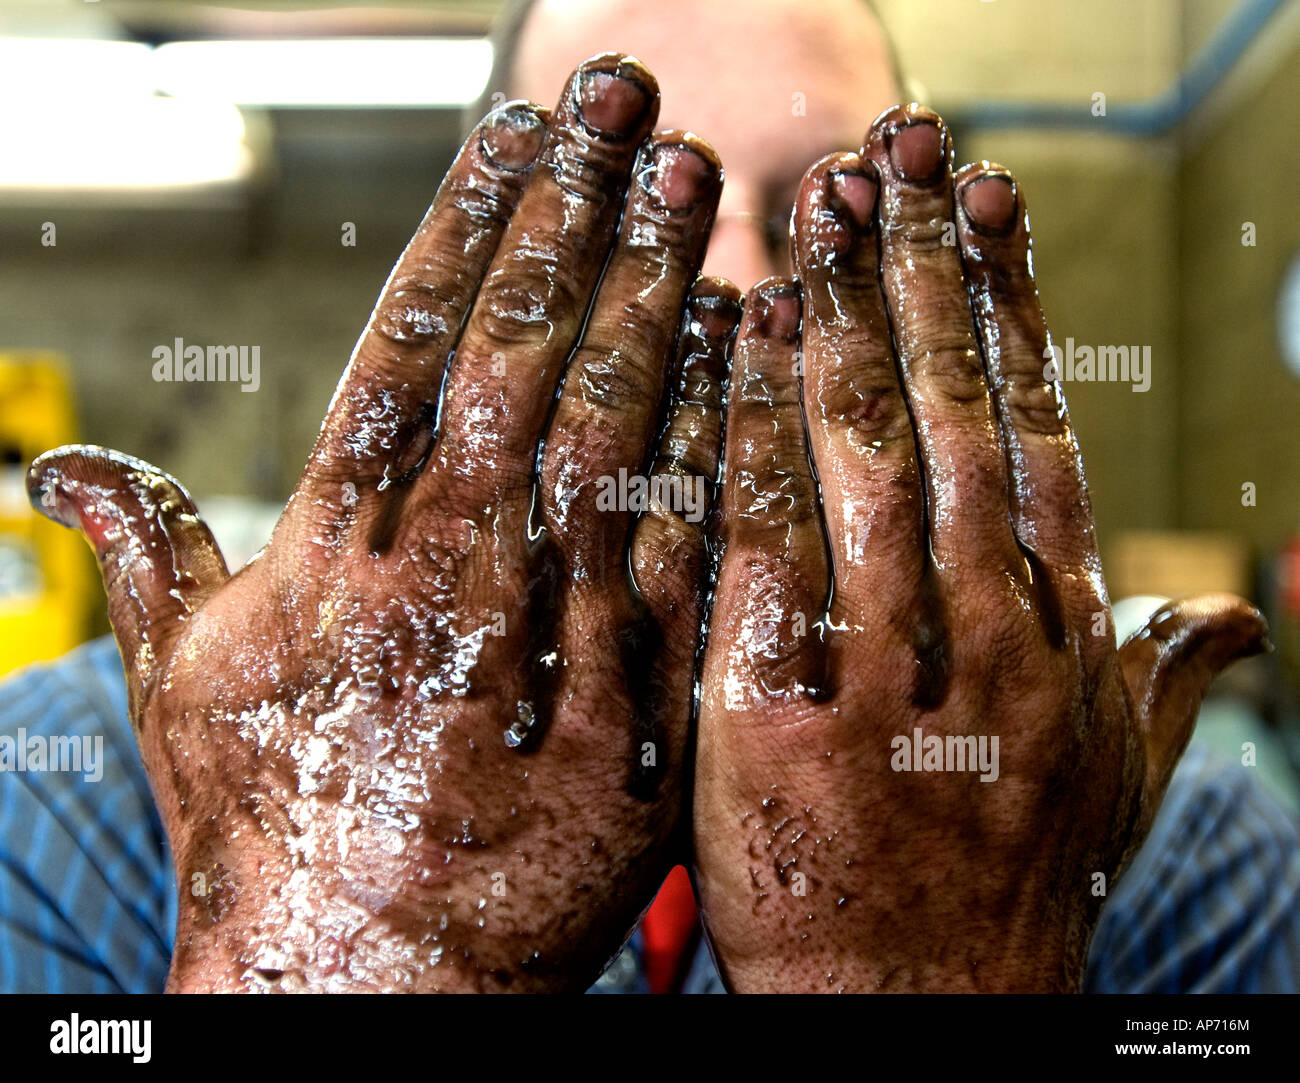 Hands On Garage : Workman s hands covered with oil in front of worker